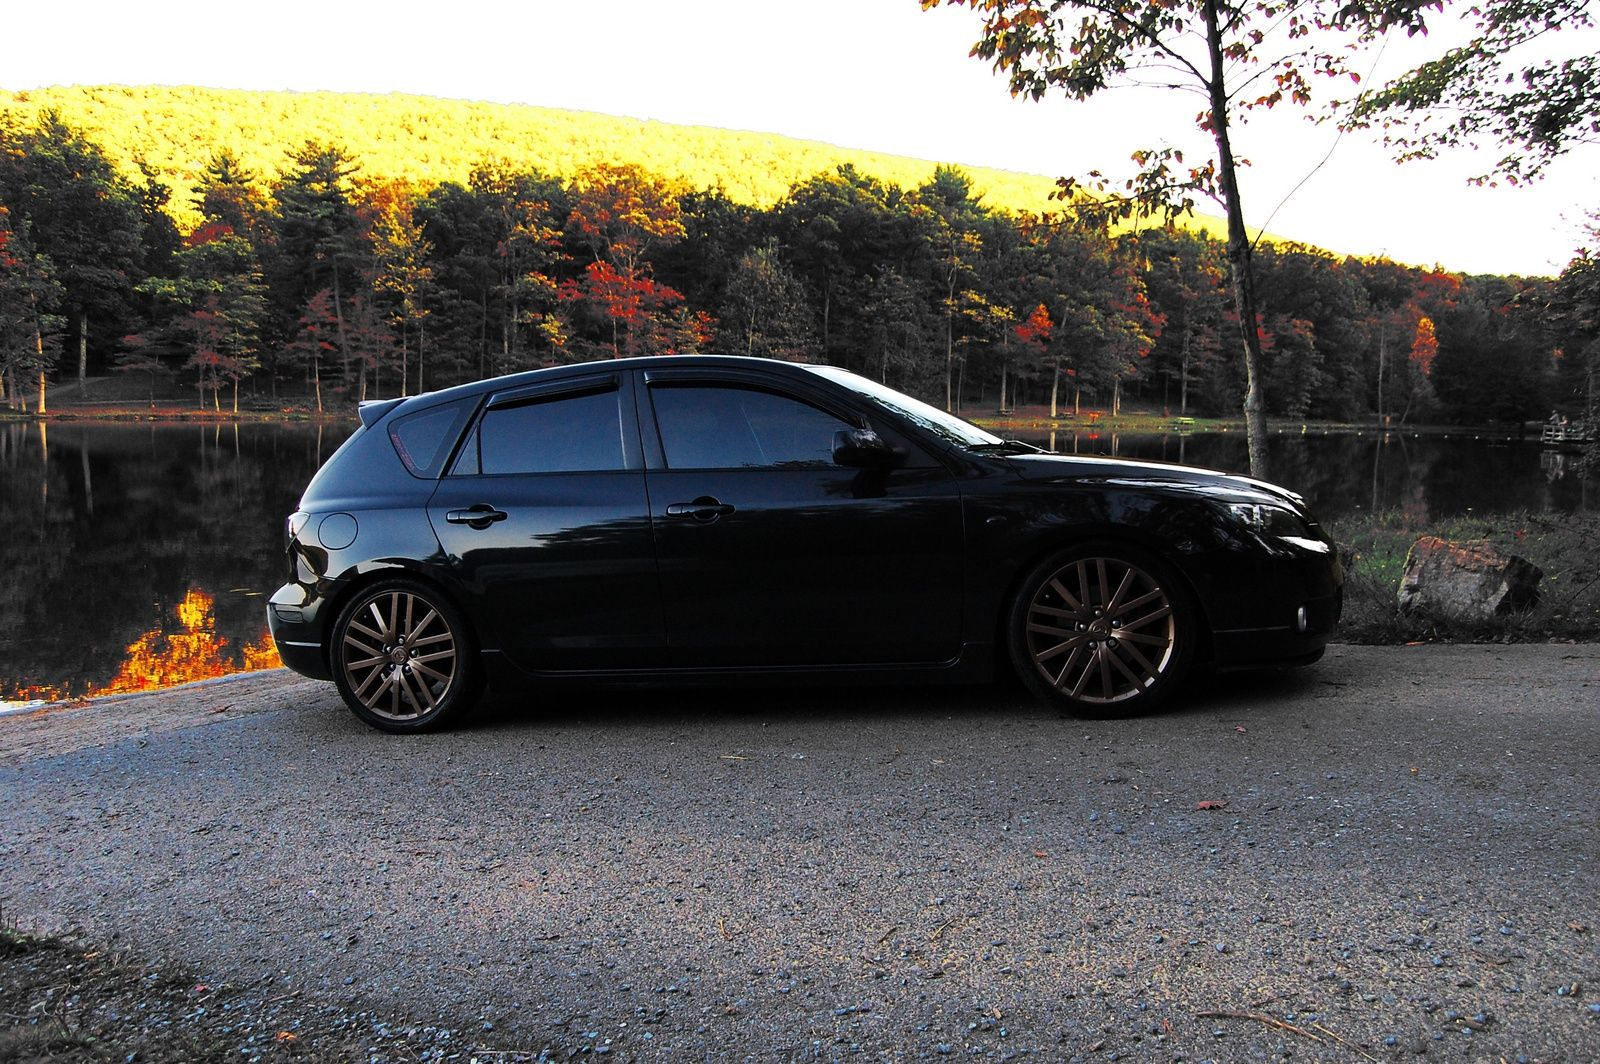 2005 mazda mazda3 s hatchback picture exterior carzzz pinterest mazda mazda3 mazda and. Black Bedroom Furniture Sets. Home Design Ideas